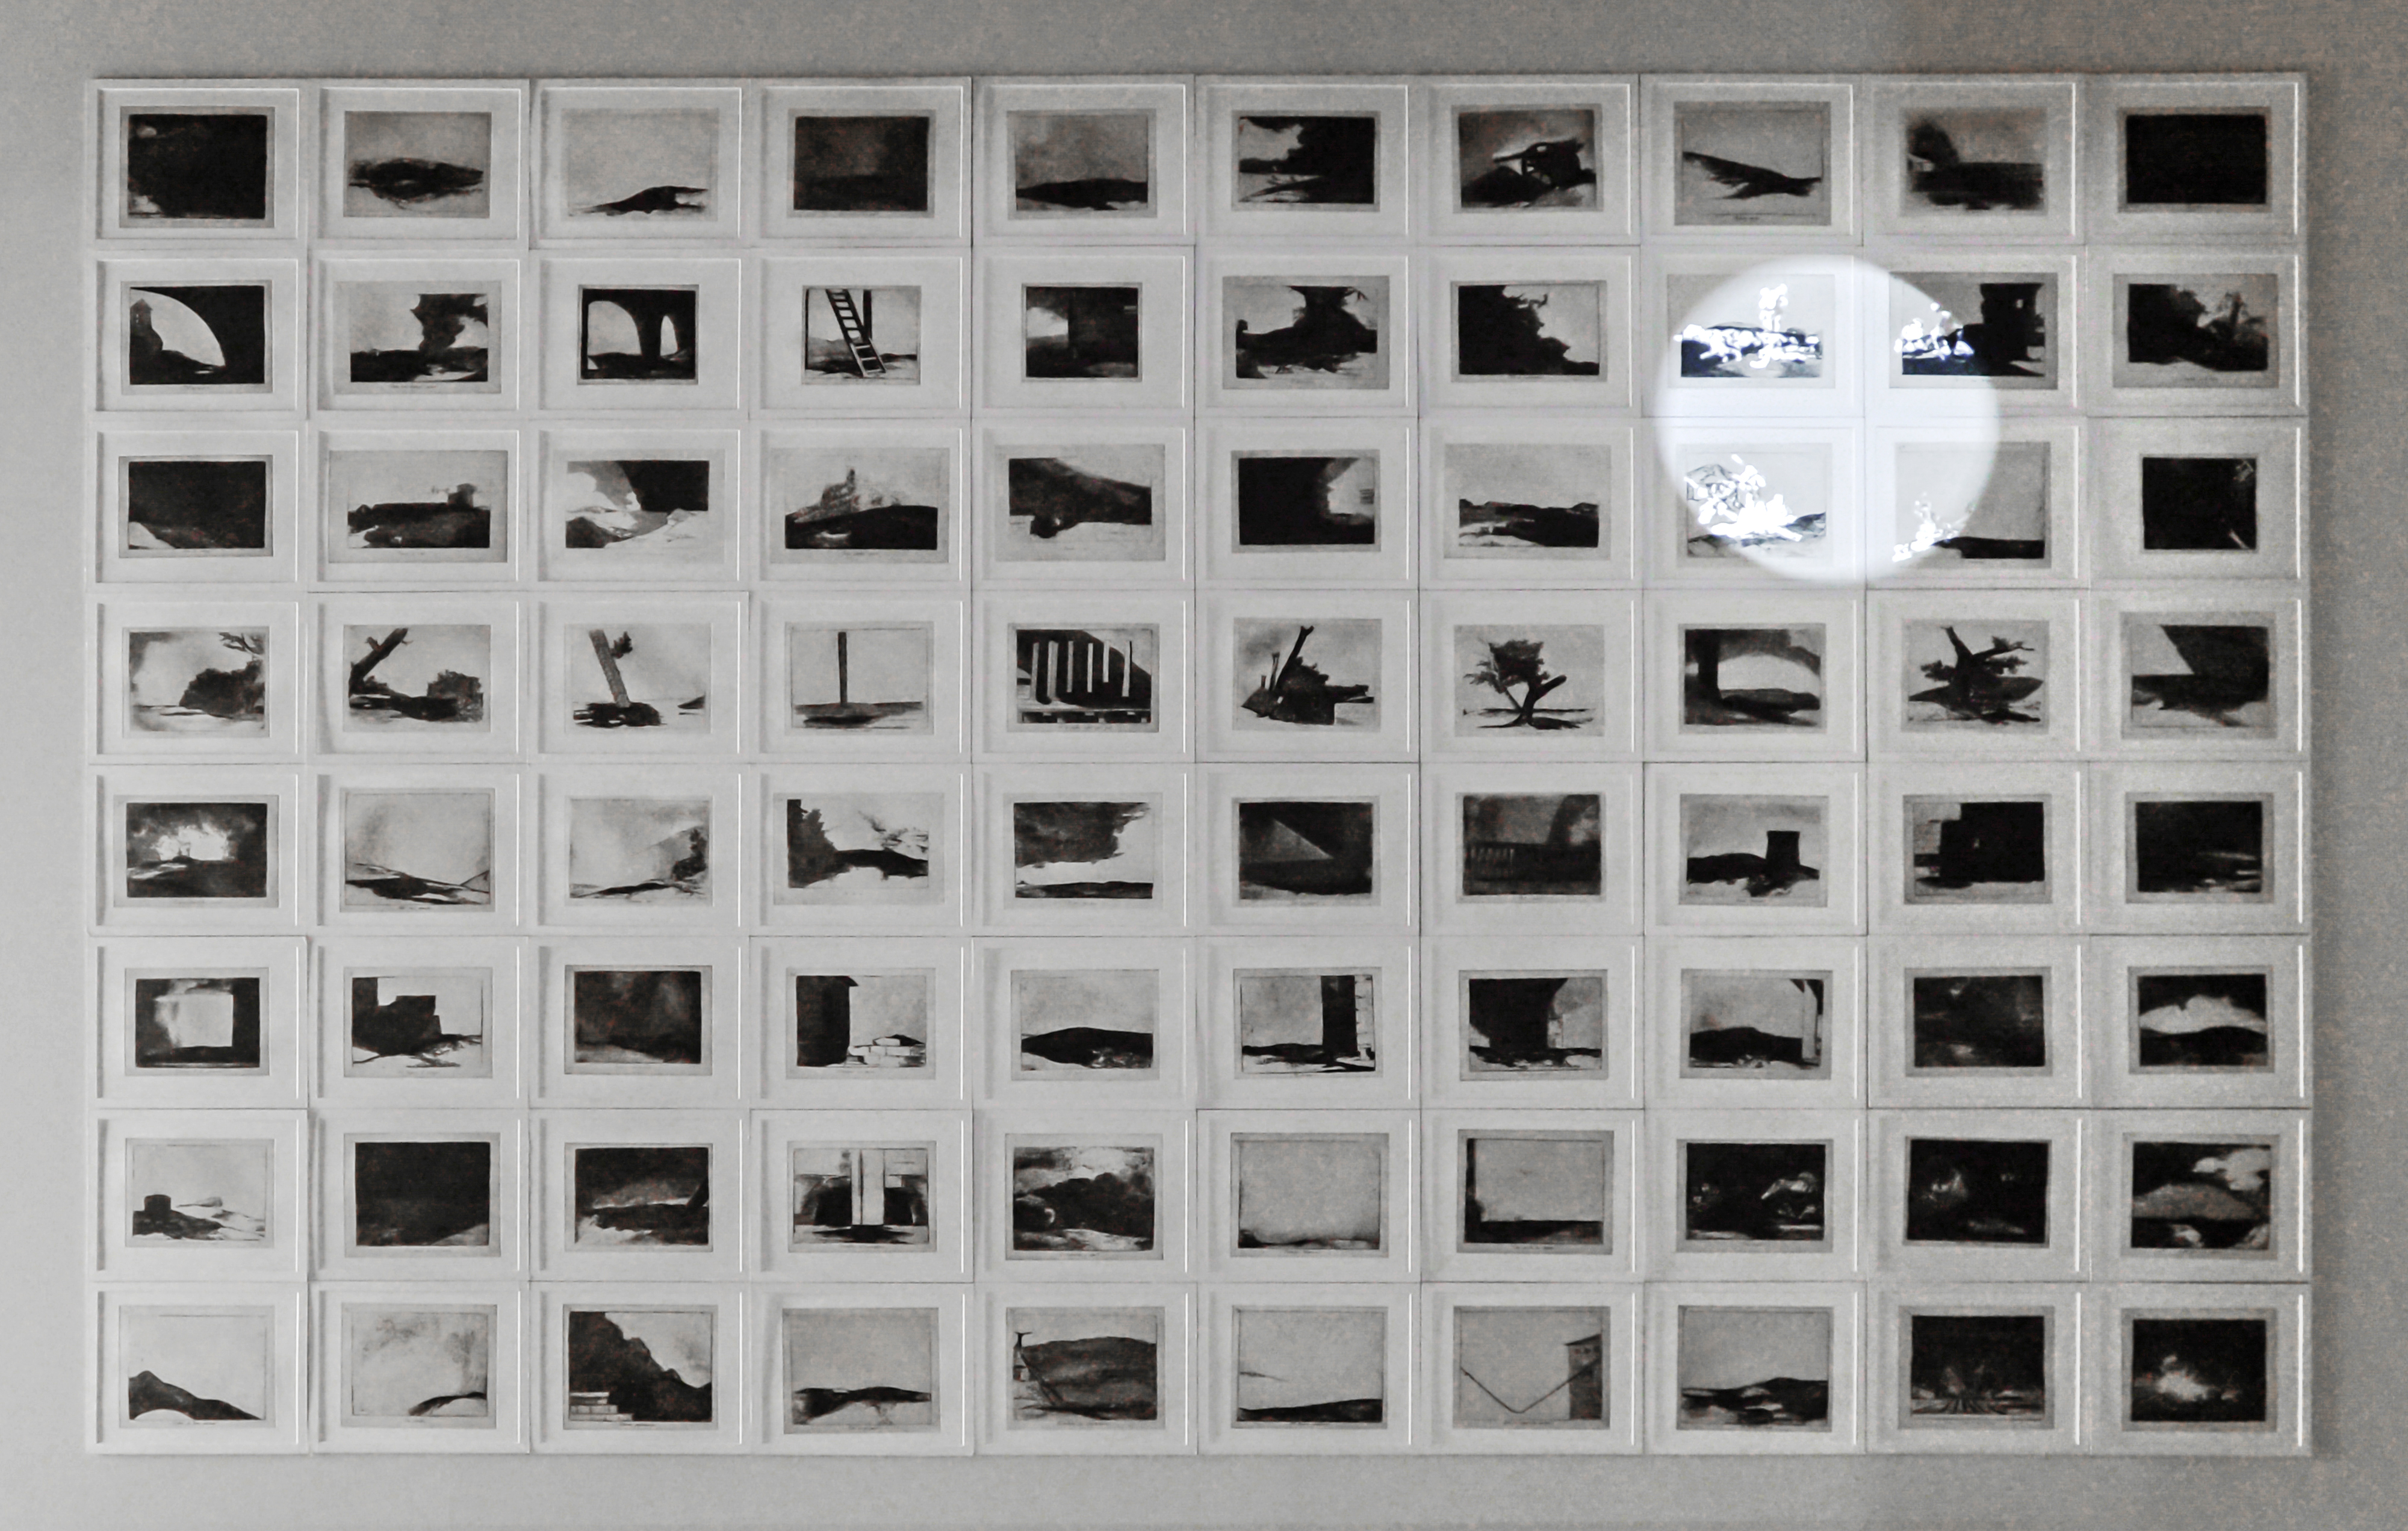 Farideh Lashai, When I count, there are only you…, But when I look, there is only a shadow, 2012–13, projection of animated images on a suite of 80 original photo-intaglio prints, gift of the 2019 Collectors Committee, © Estate of Farideh Lashai